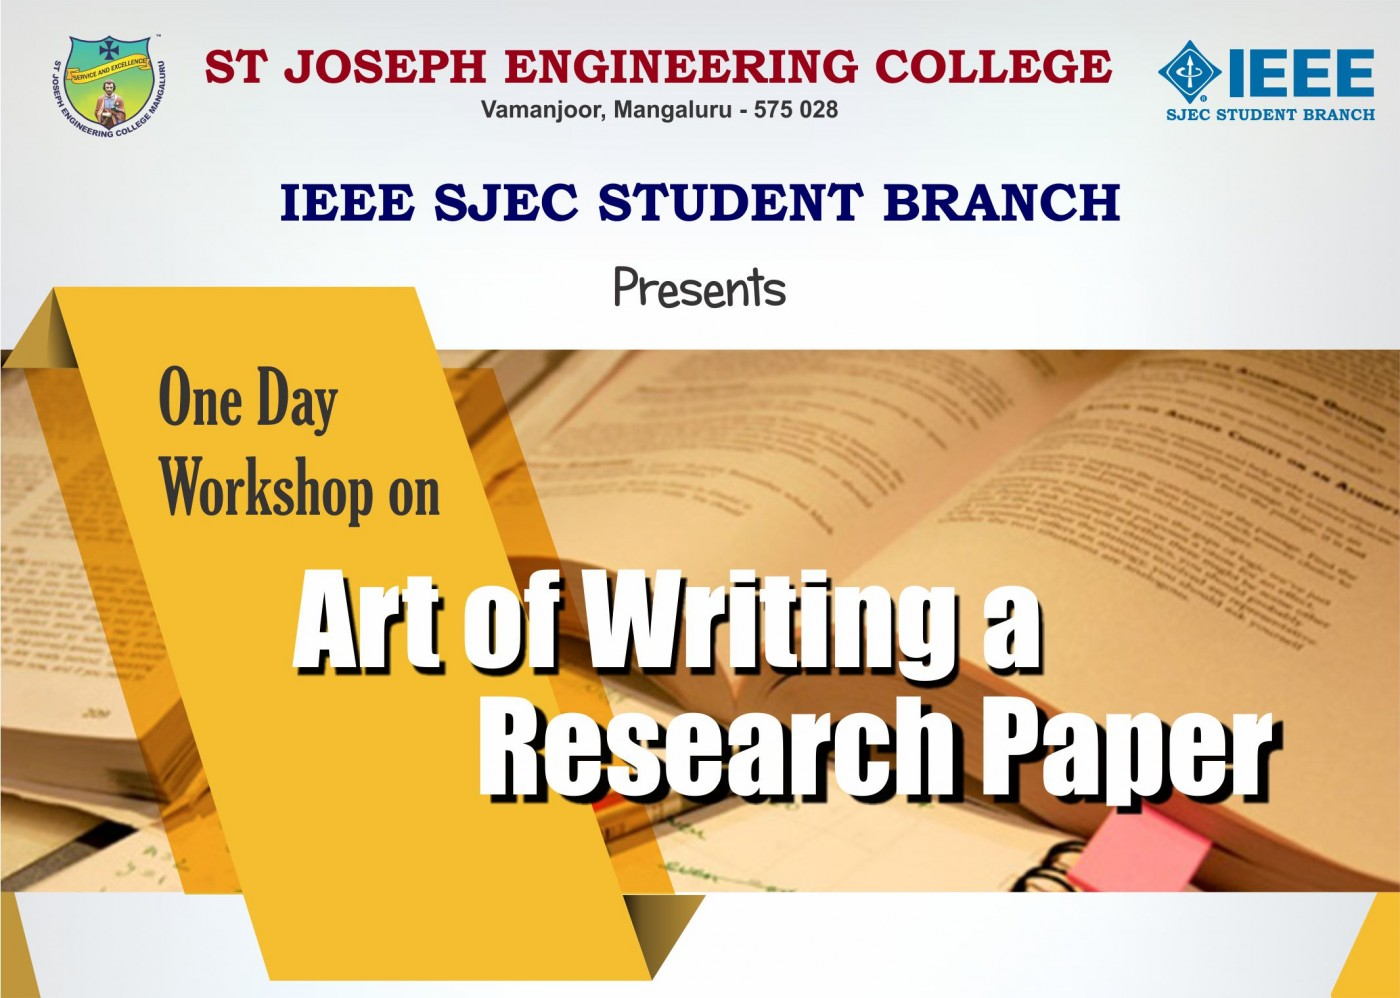 005 Research Paper About Writing Workshop Rare Topics On Indian In English Skills Pdf 1400